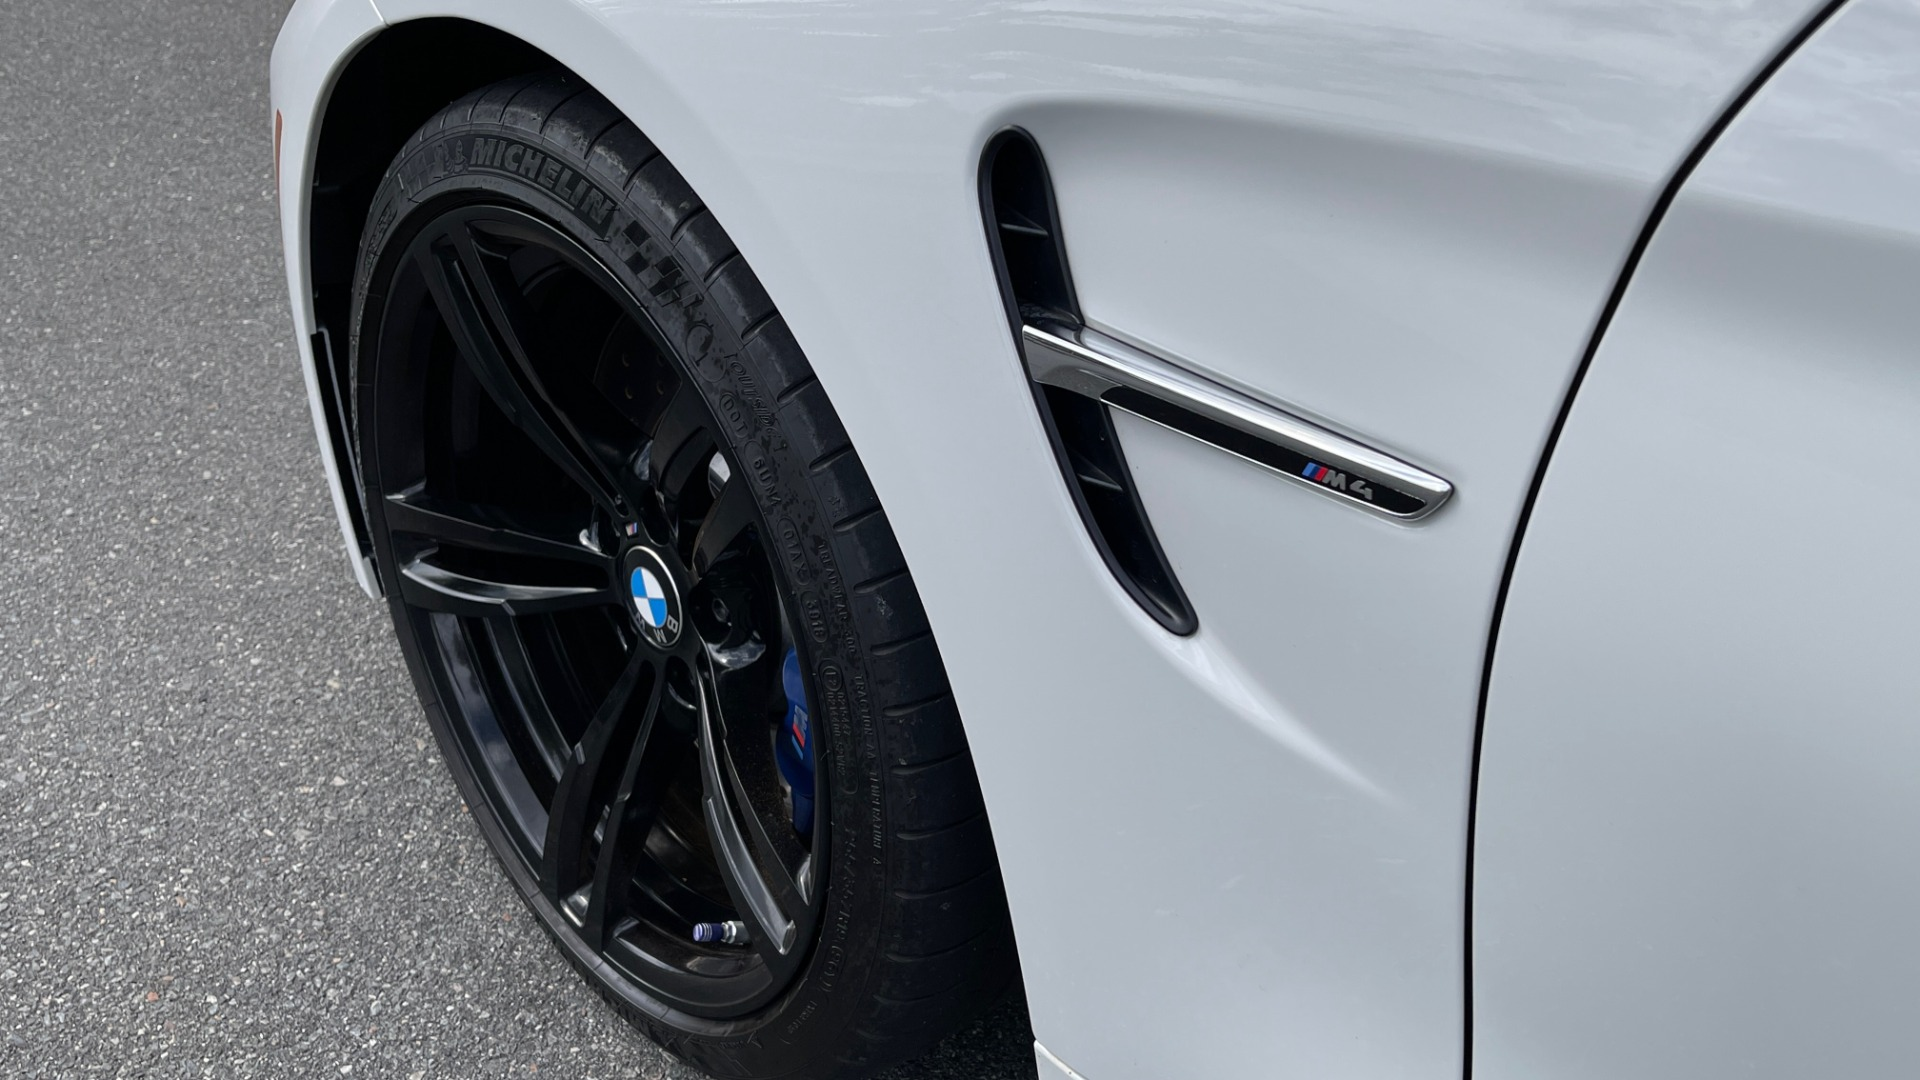 Used 2016 BMW M4 CONVERTIBLE 3.0L / 7-SPD AUTO / EXECUTIVE / ADAPT M SUSP / REARVIEW for sale $53,999 at Formula Imports in Charlotte NC 28227 19